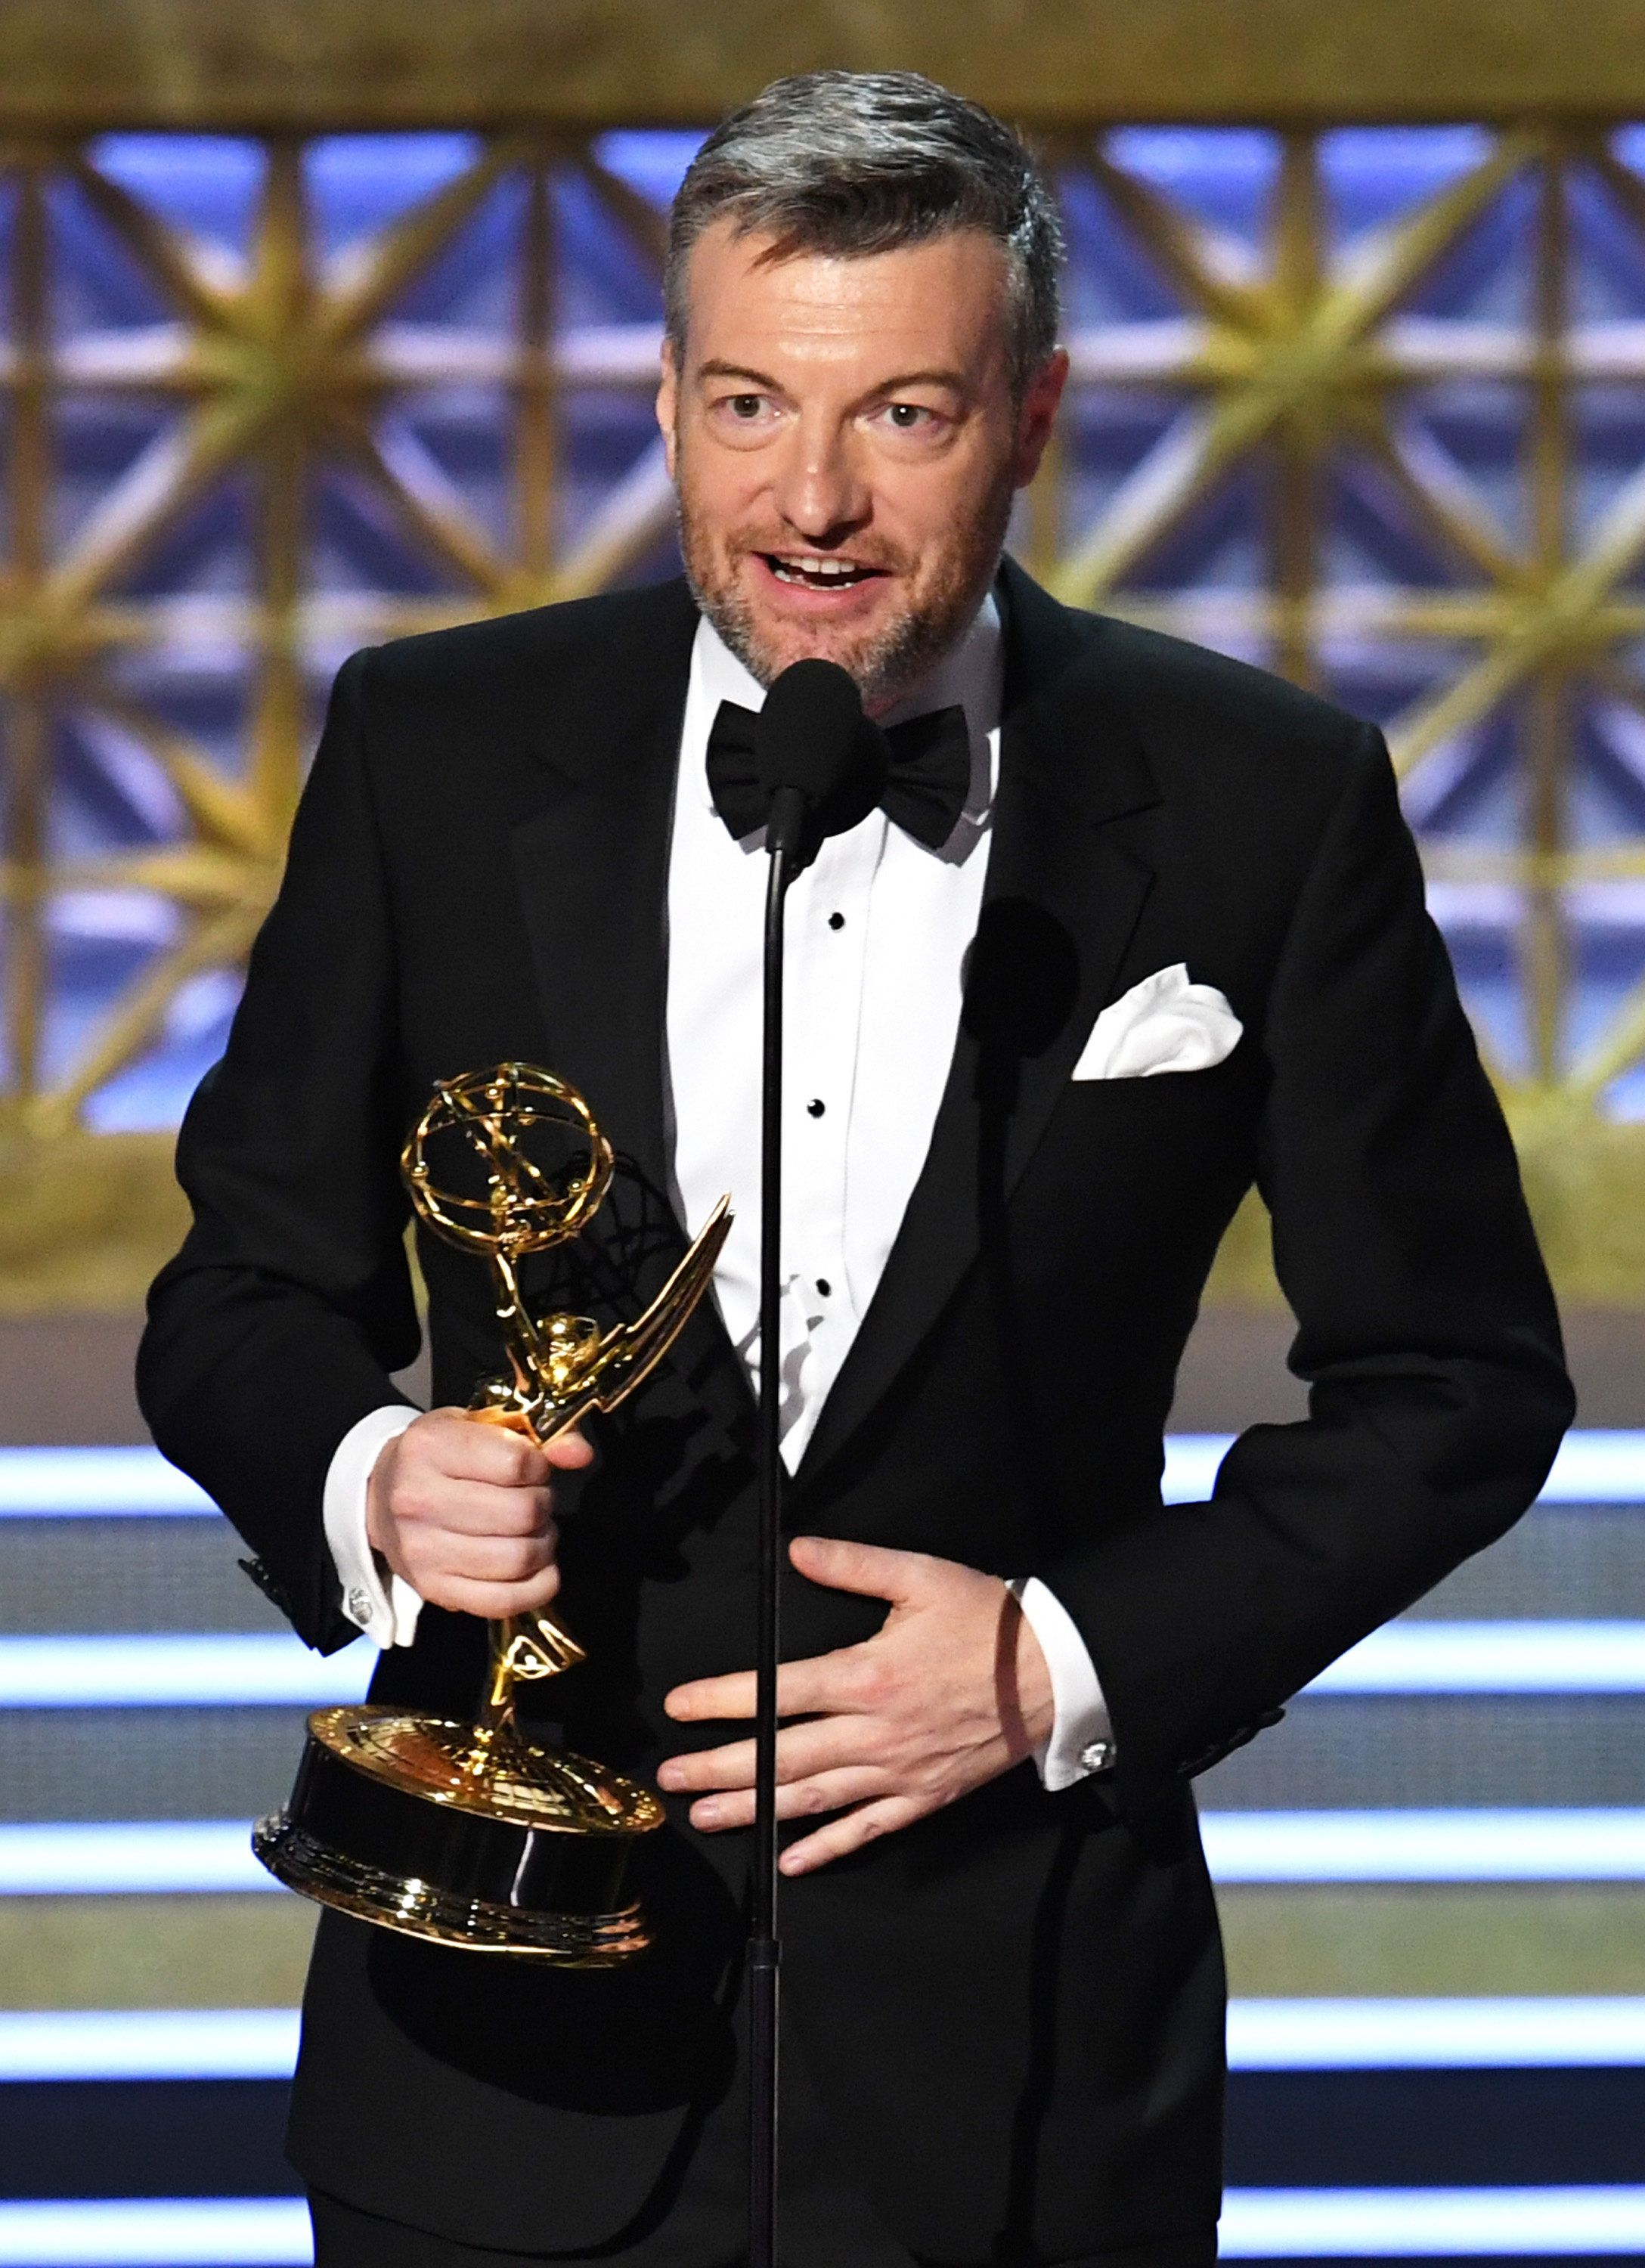 Charlie Brooker Leads British Winners At The Emmys With 'Black Mirror'